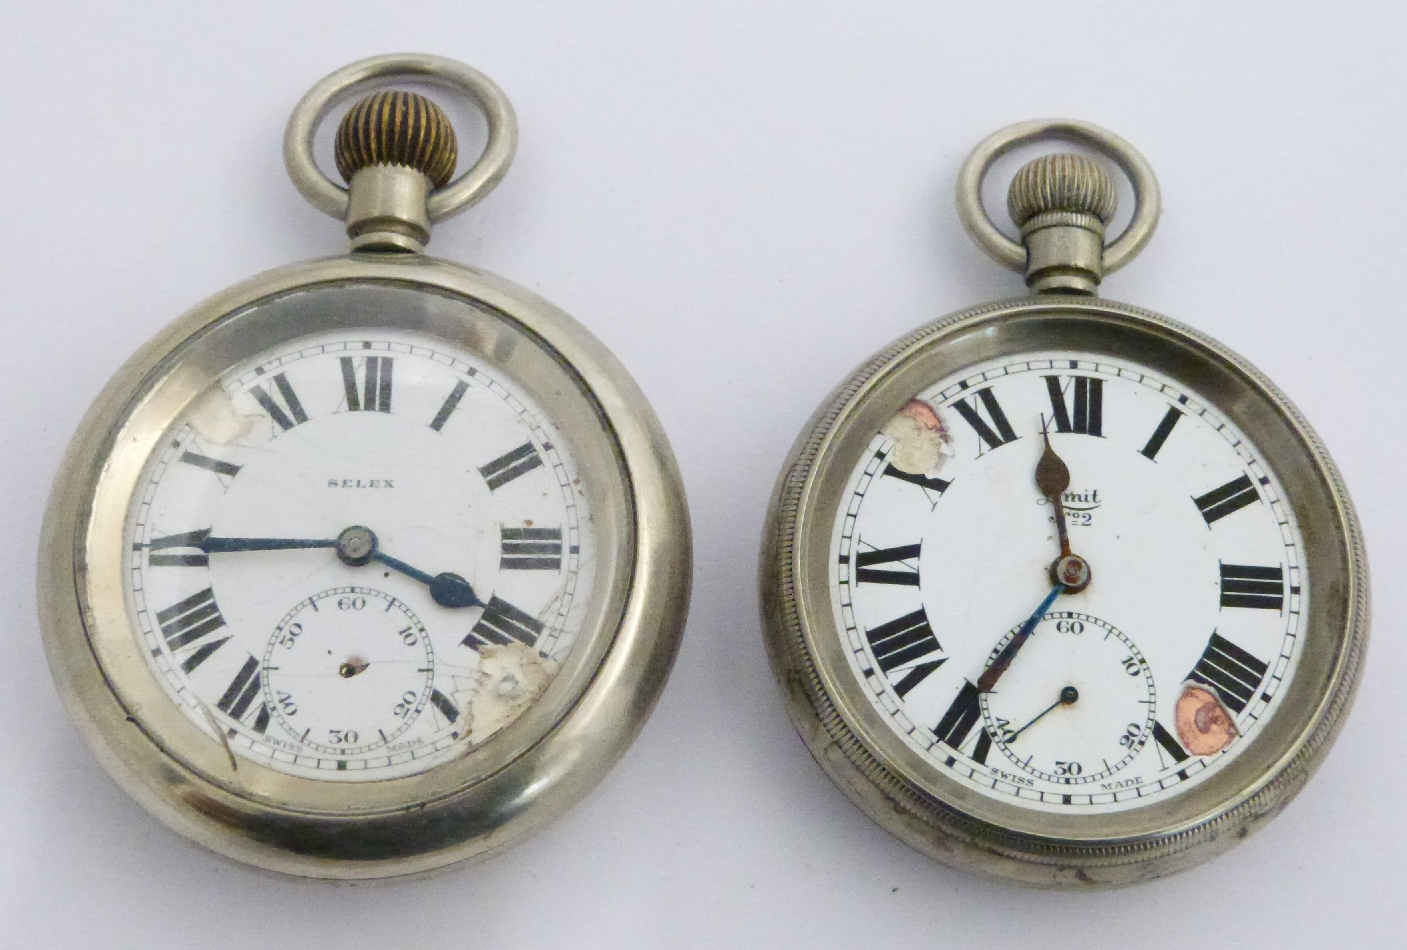 Lot 49 - Two London North Eastern Railway keyless winding open faced pocket watches, one Limit the other